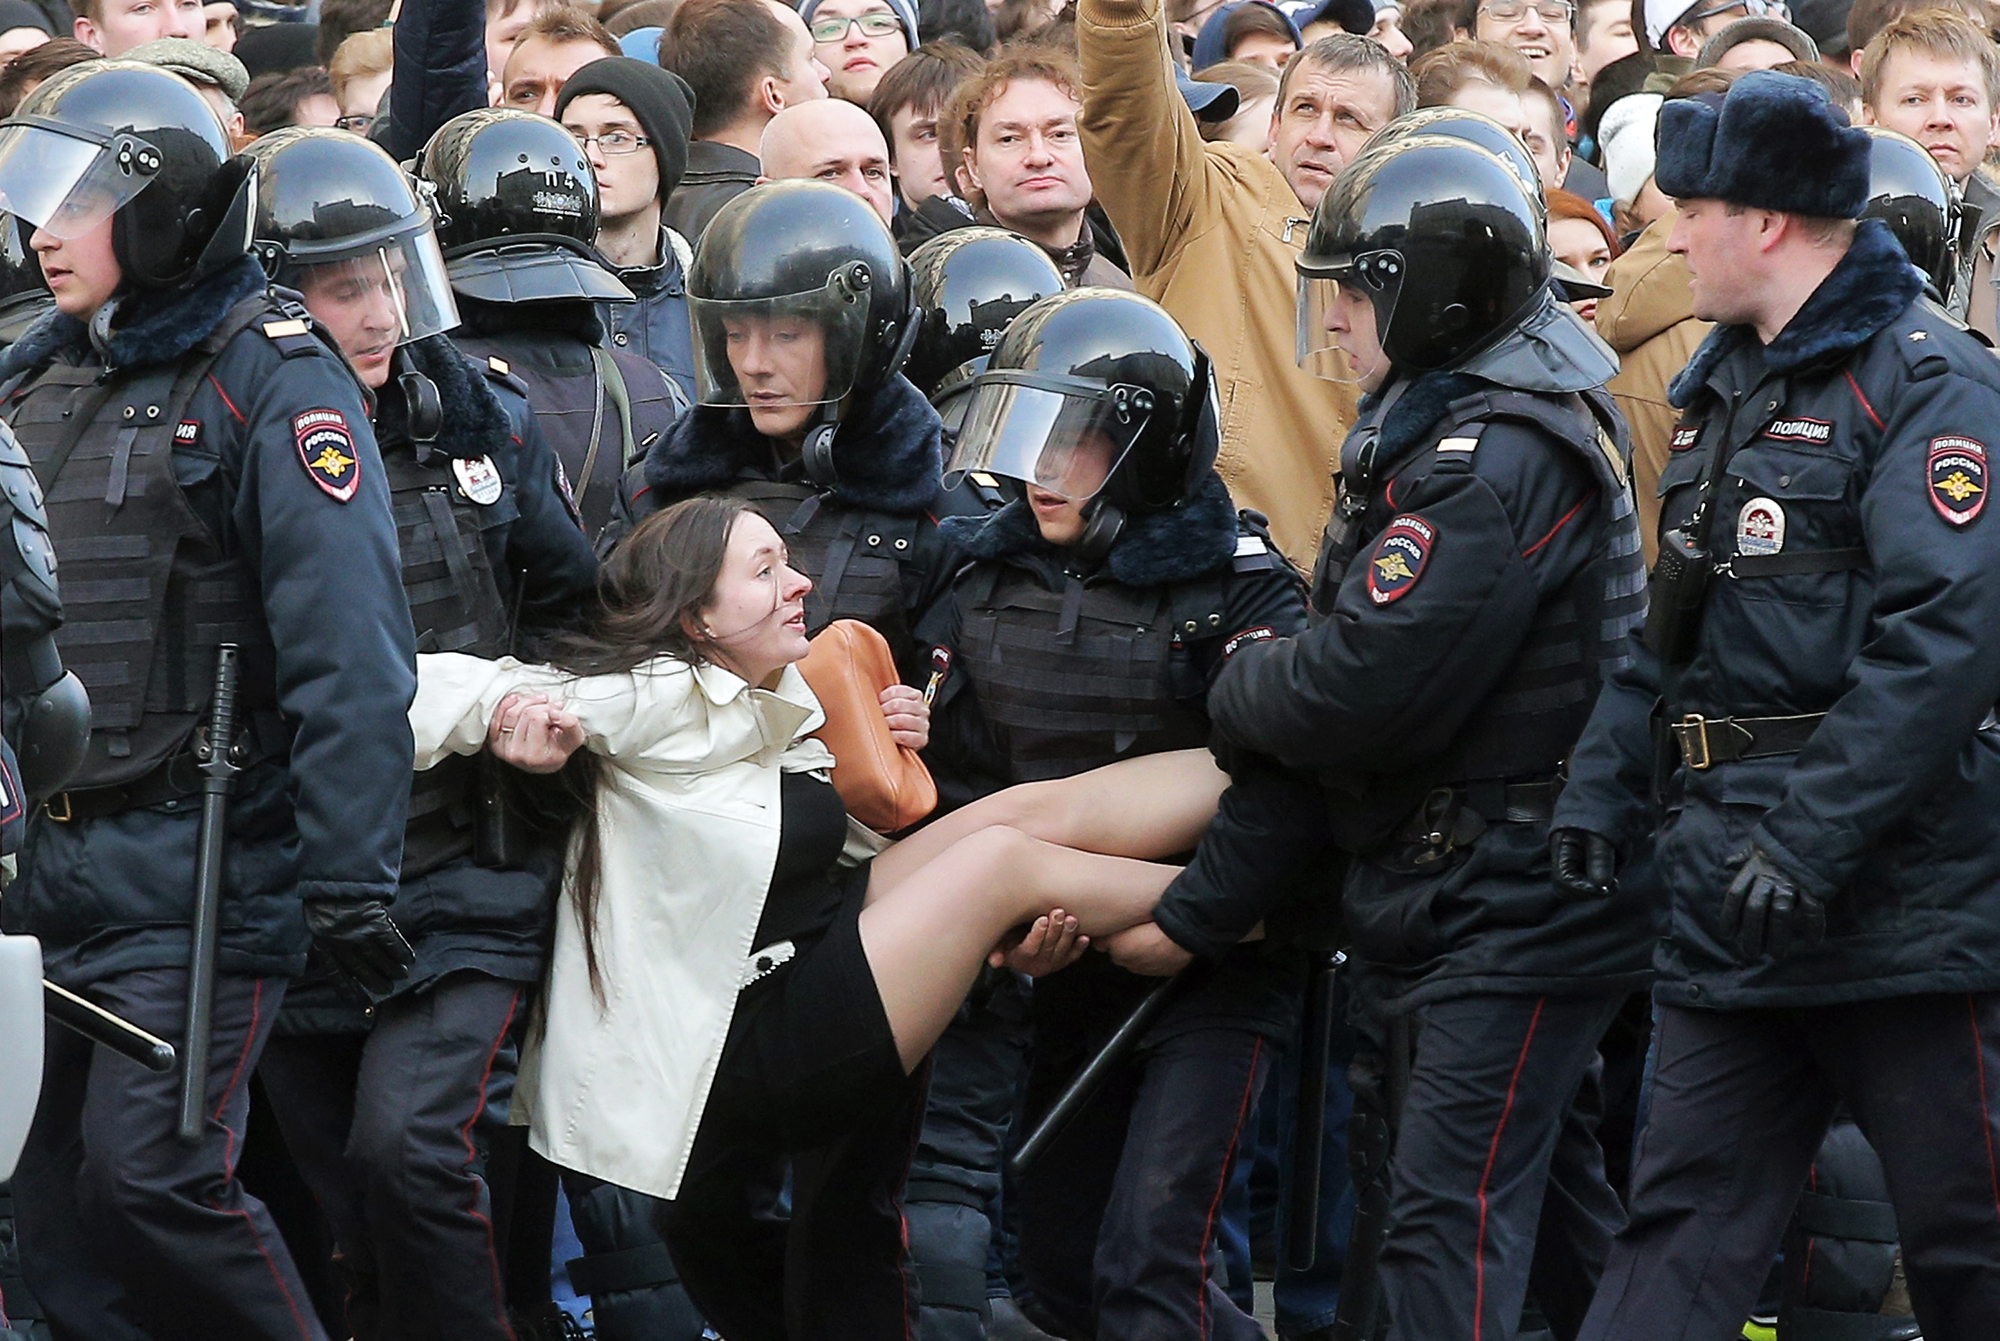 Police officers detain a demonstrator during an opposition rally in Moscow on March 26, 2017.